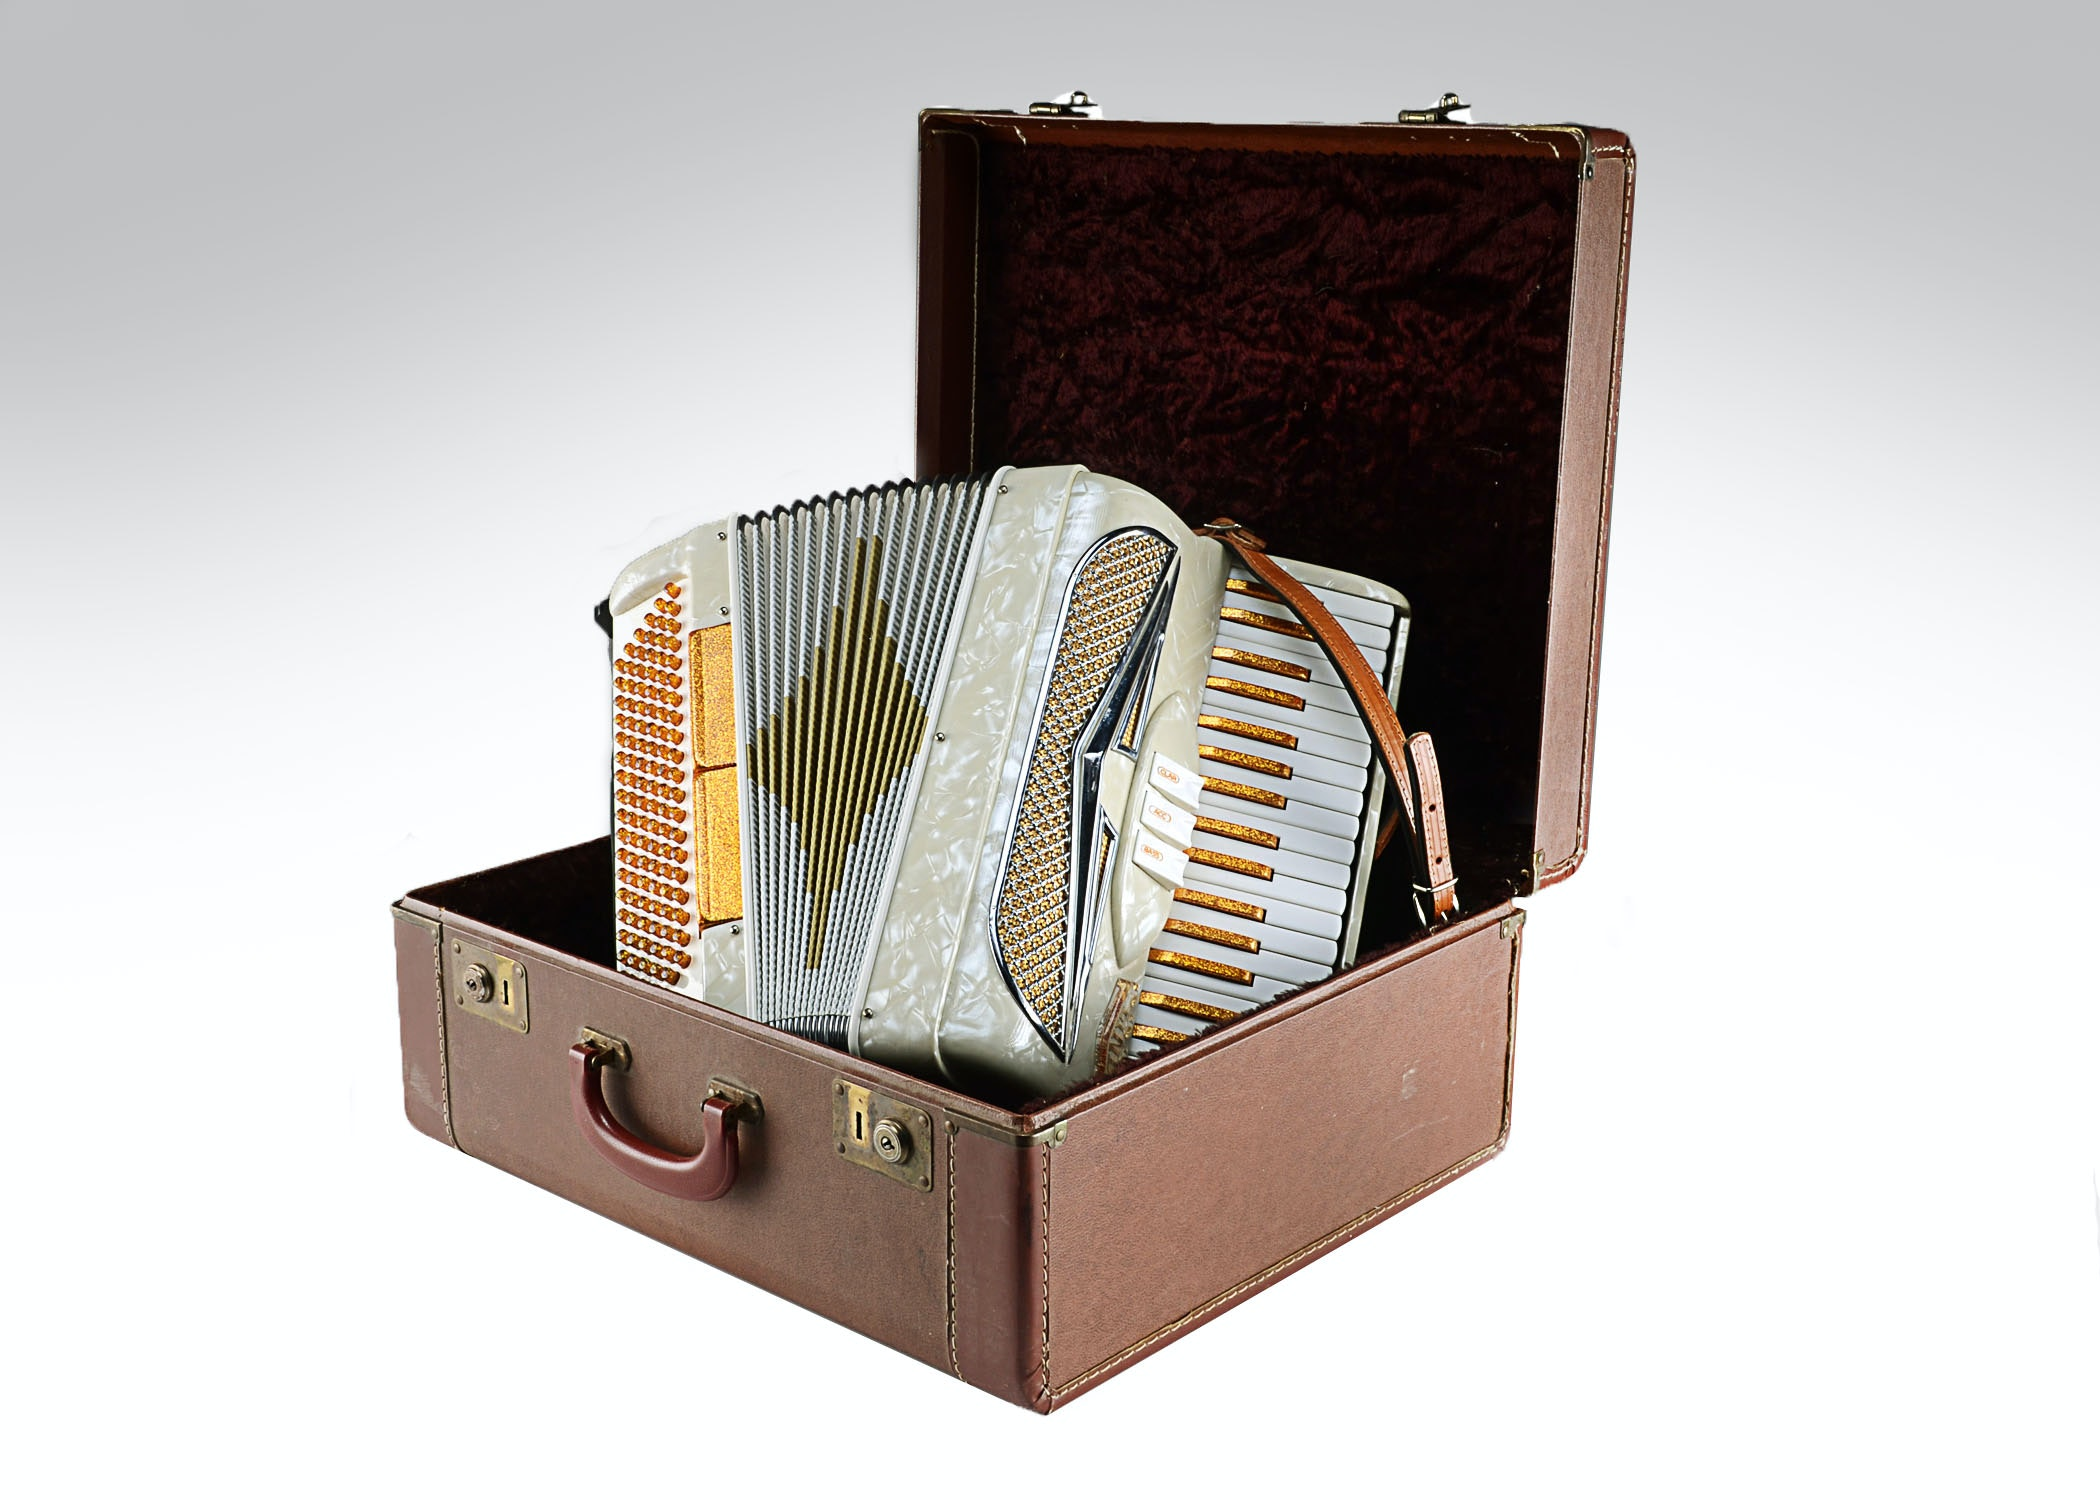 Lindo Product of Imperial Accordion